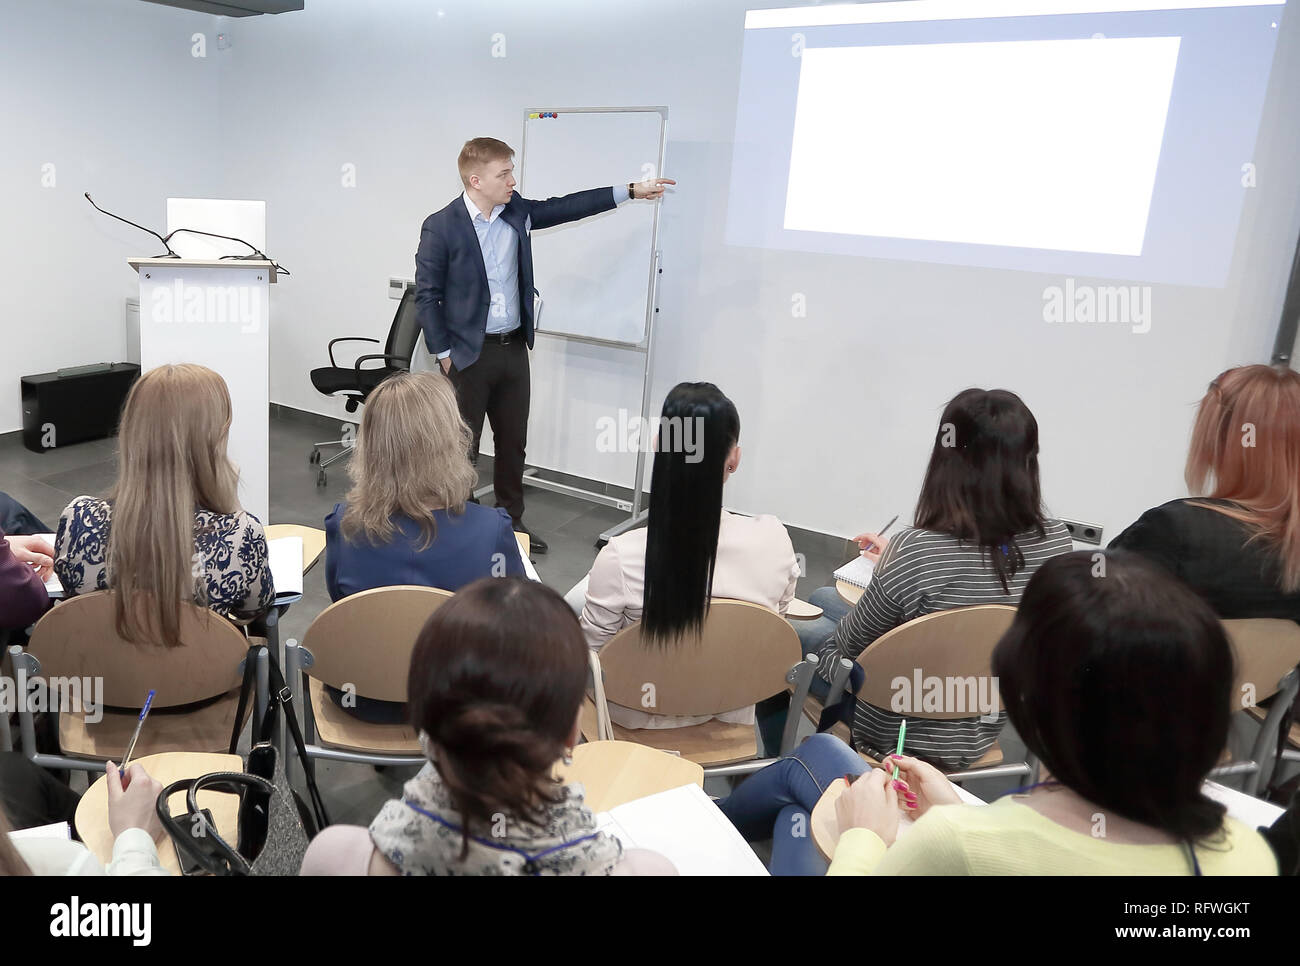 Speaker standing and lecturing on business conference in meeting hall - Stock Image